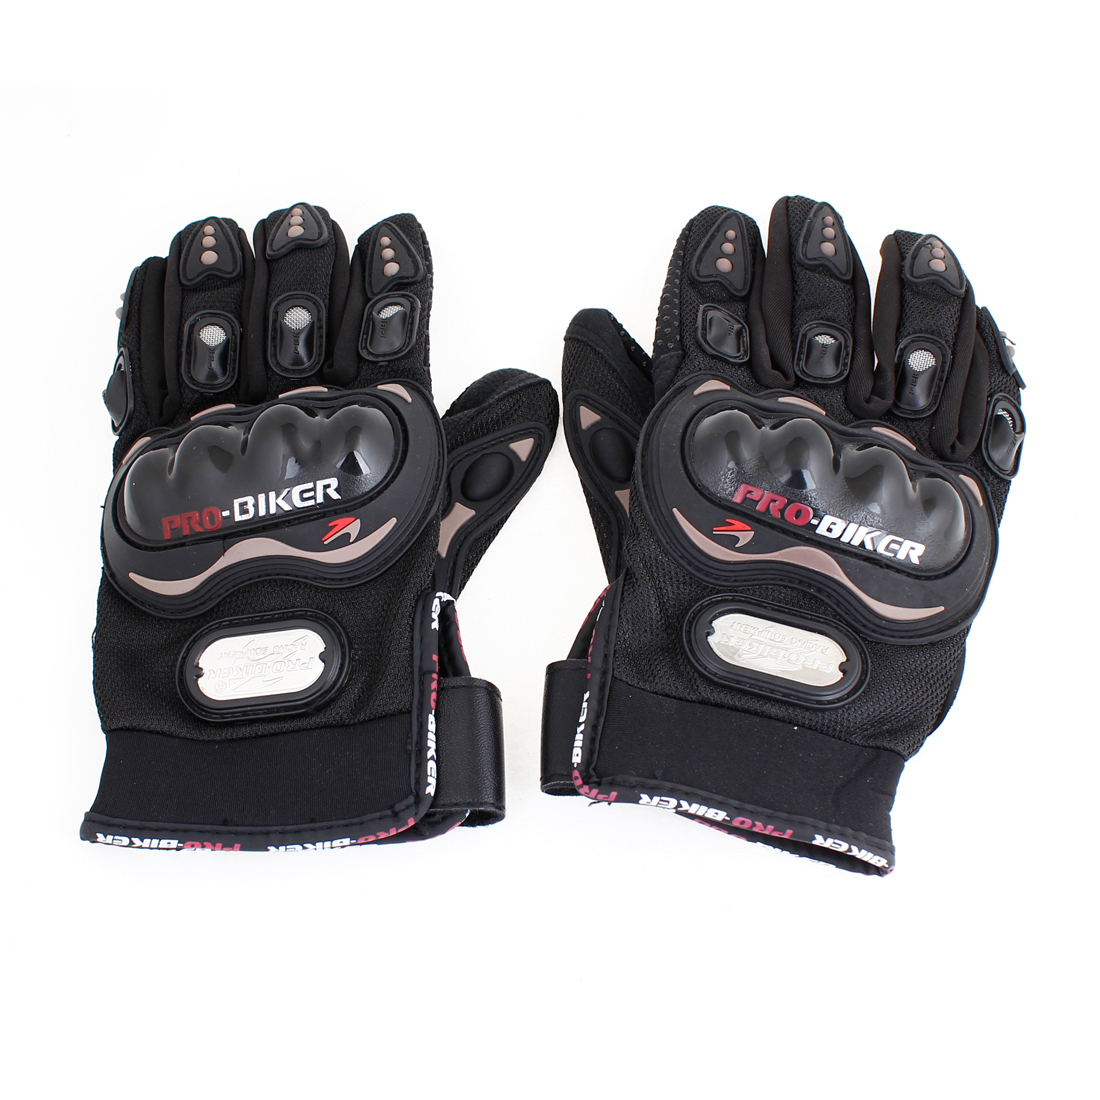 2pcs Motorcycle Nonslip Design Palm Driving Full Finger Sports Gloves Black Size L